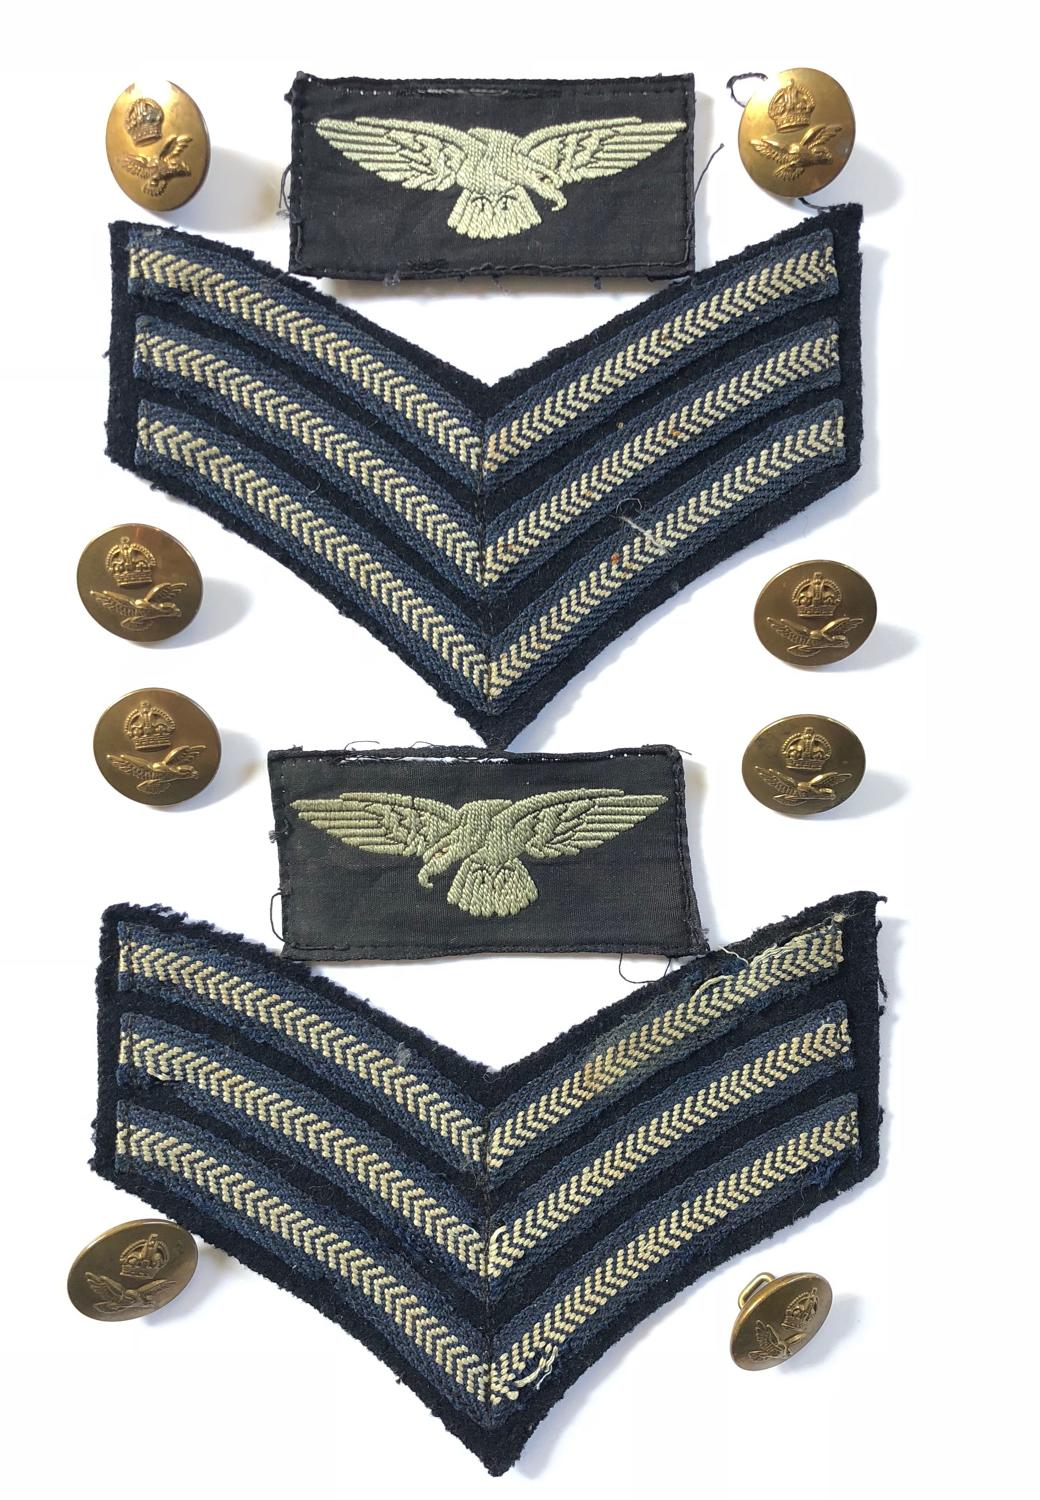 RAF WW2 Period Sergeant Uniform Badges and Buttons.